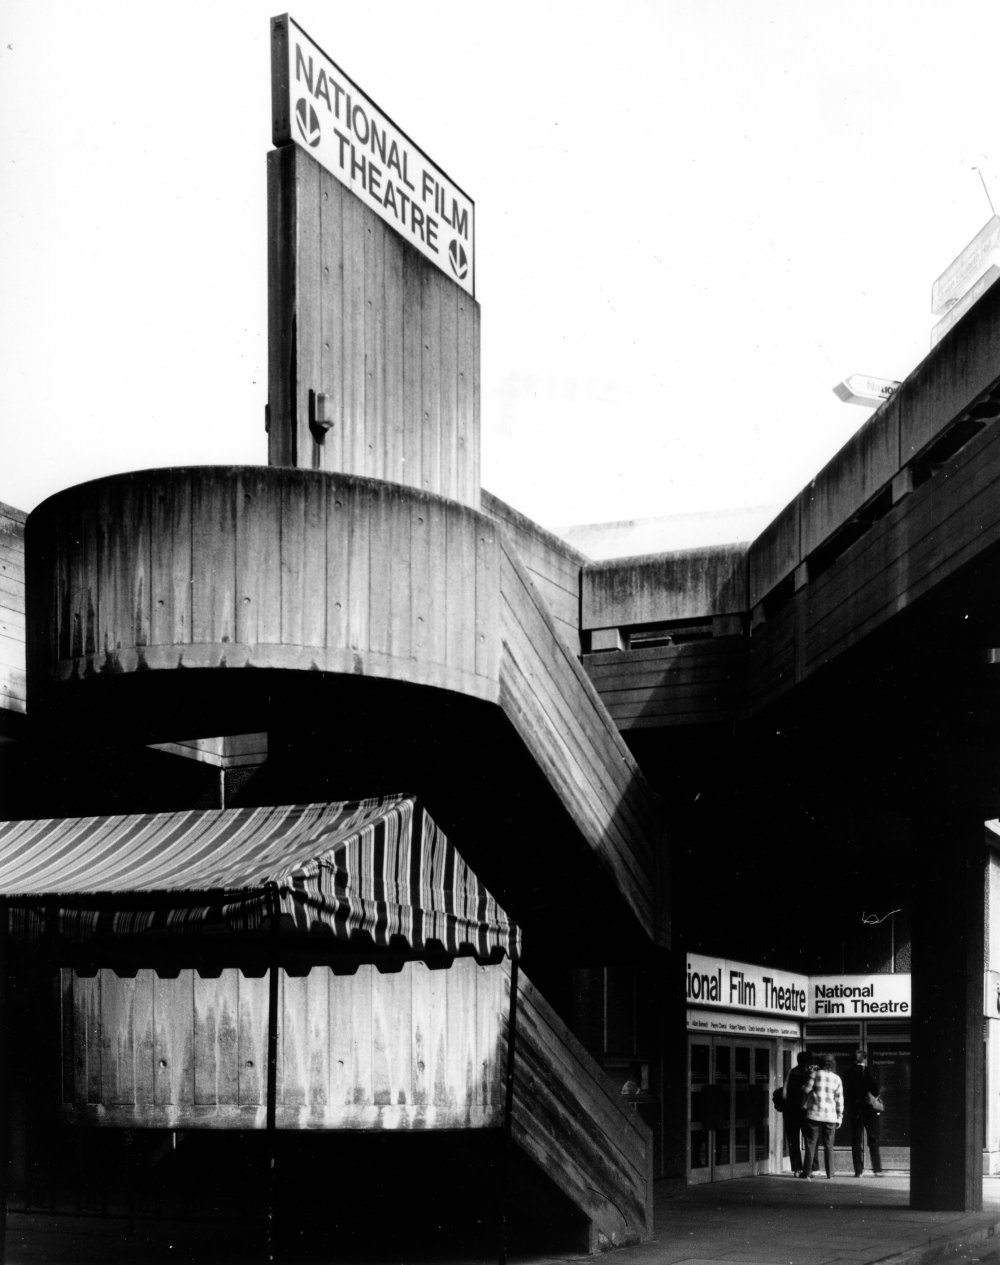 National Film Theatre (now BFI Southbank), c.1981